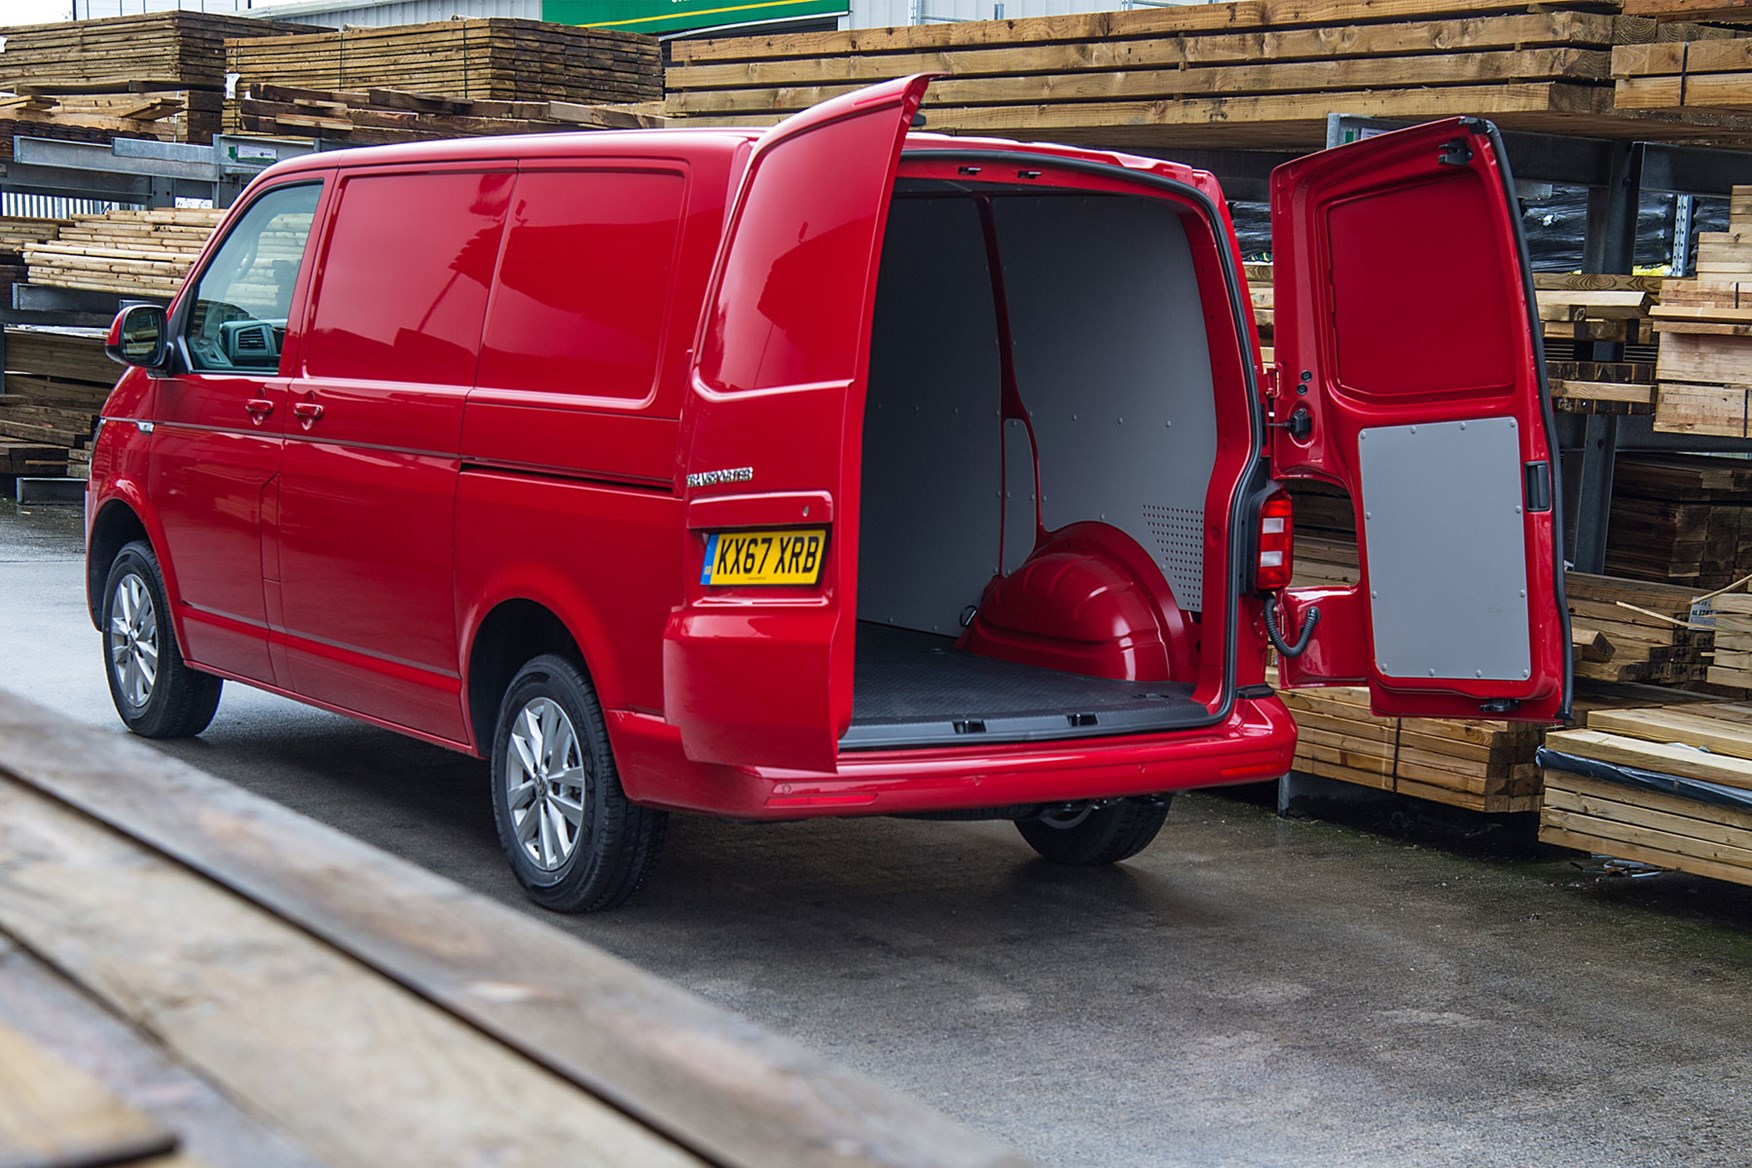 volkswagen transporter van dimensions 2015 on capacity payload volume towing parkers. Black Bedroom Furniture Sets. Home Design Ideas